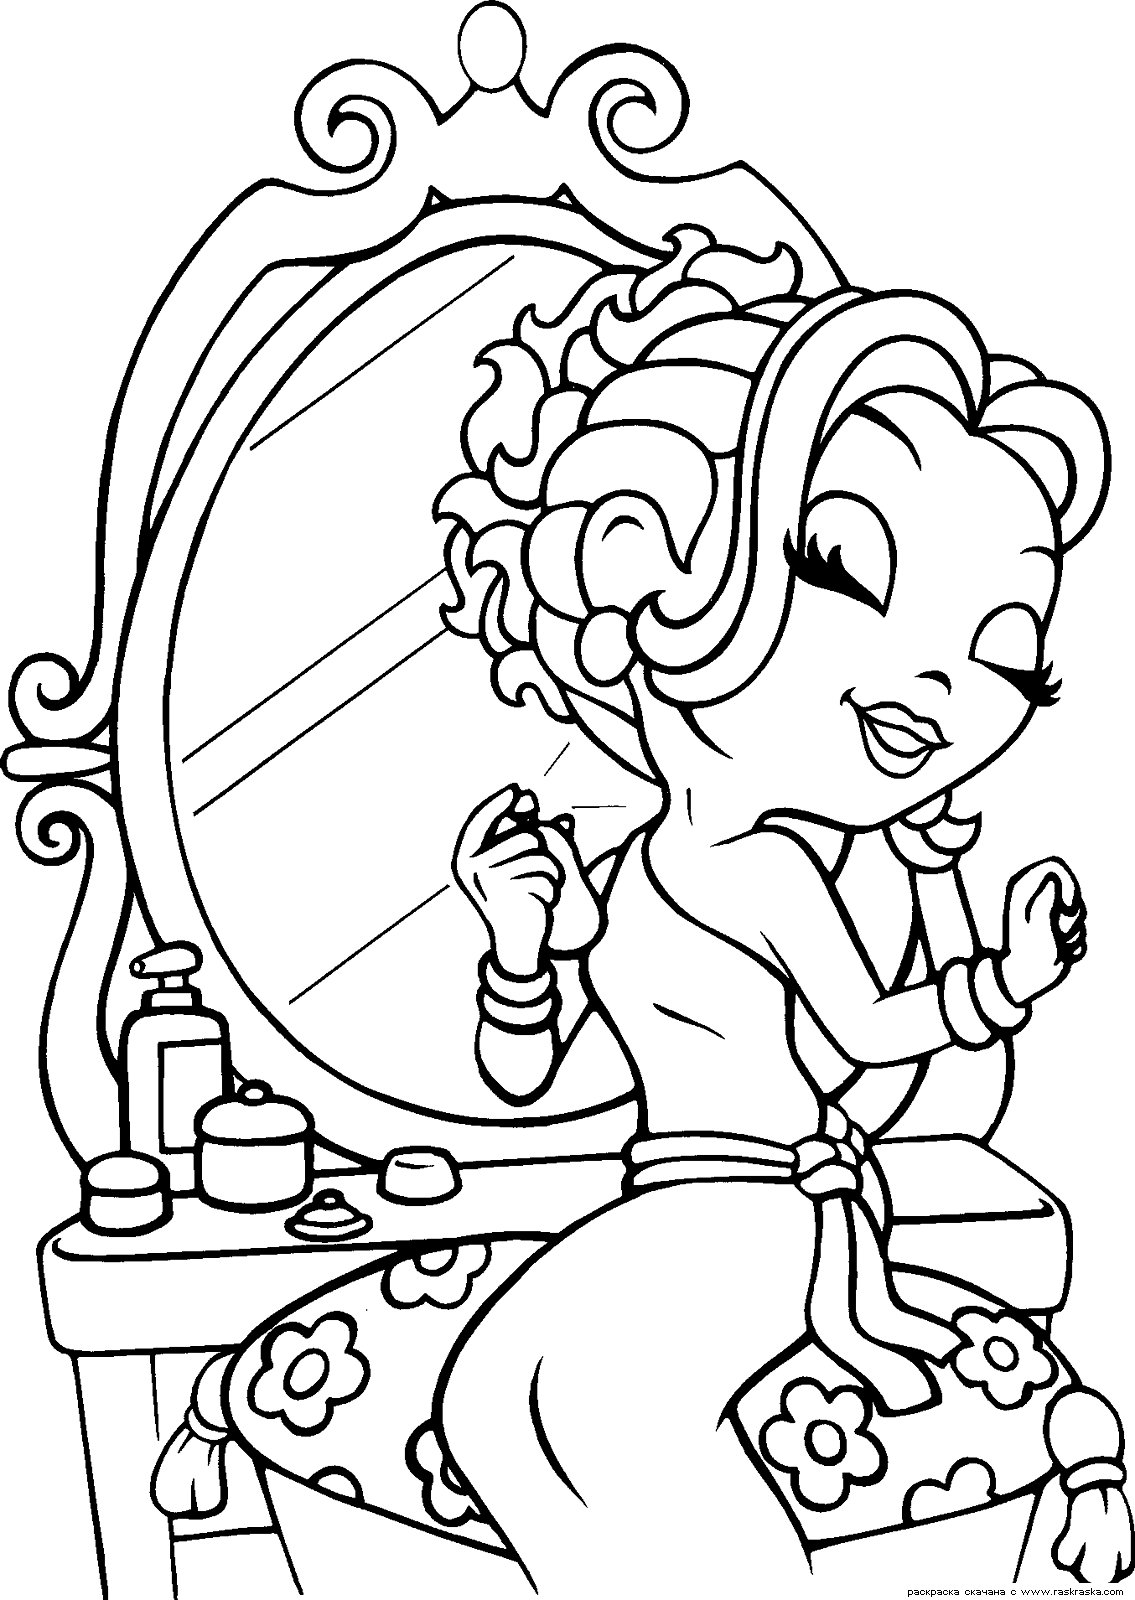 1135x1600 Edge Lisa Franks Coloring Pages Frank To Downl